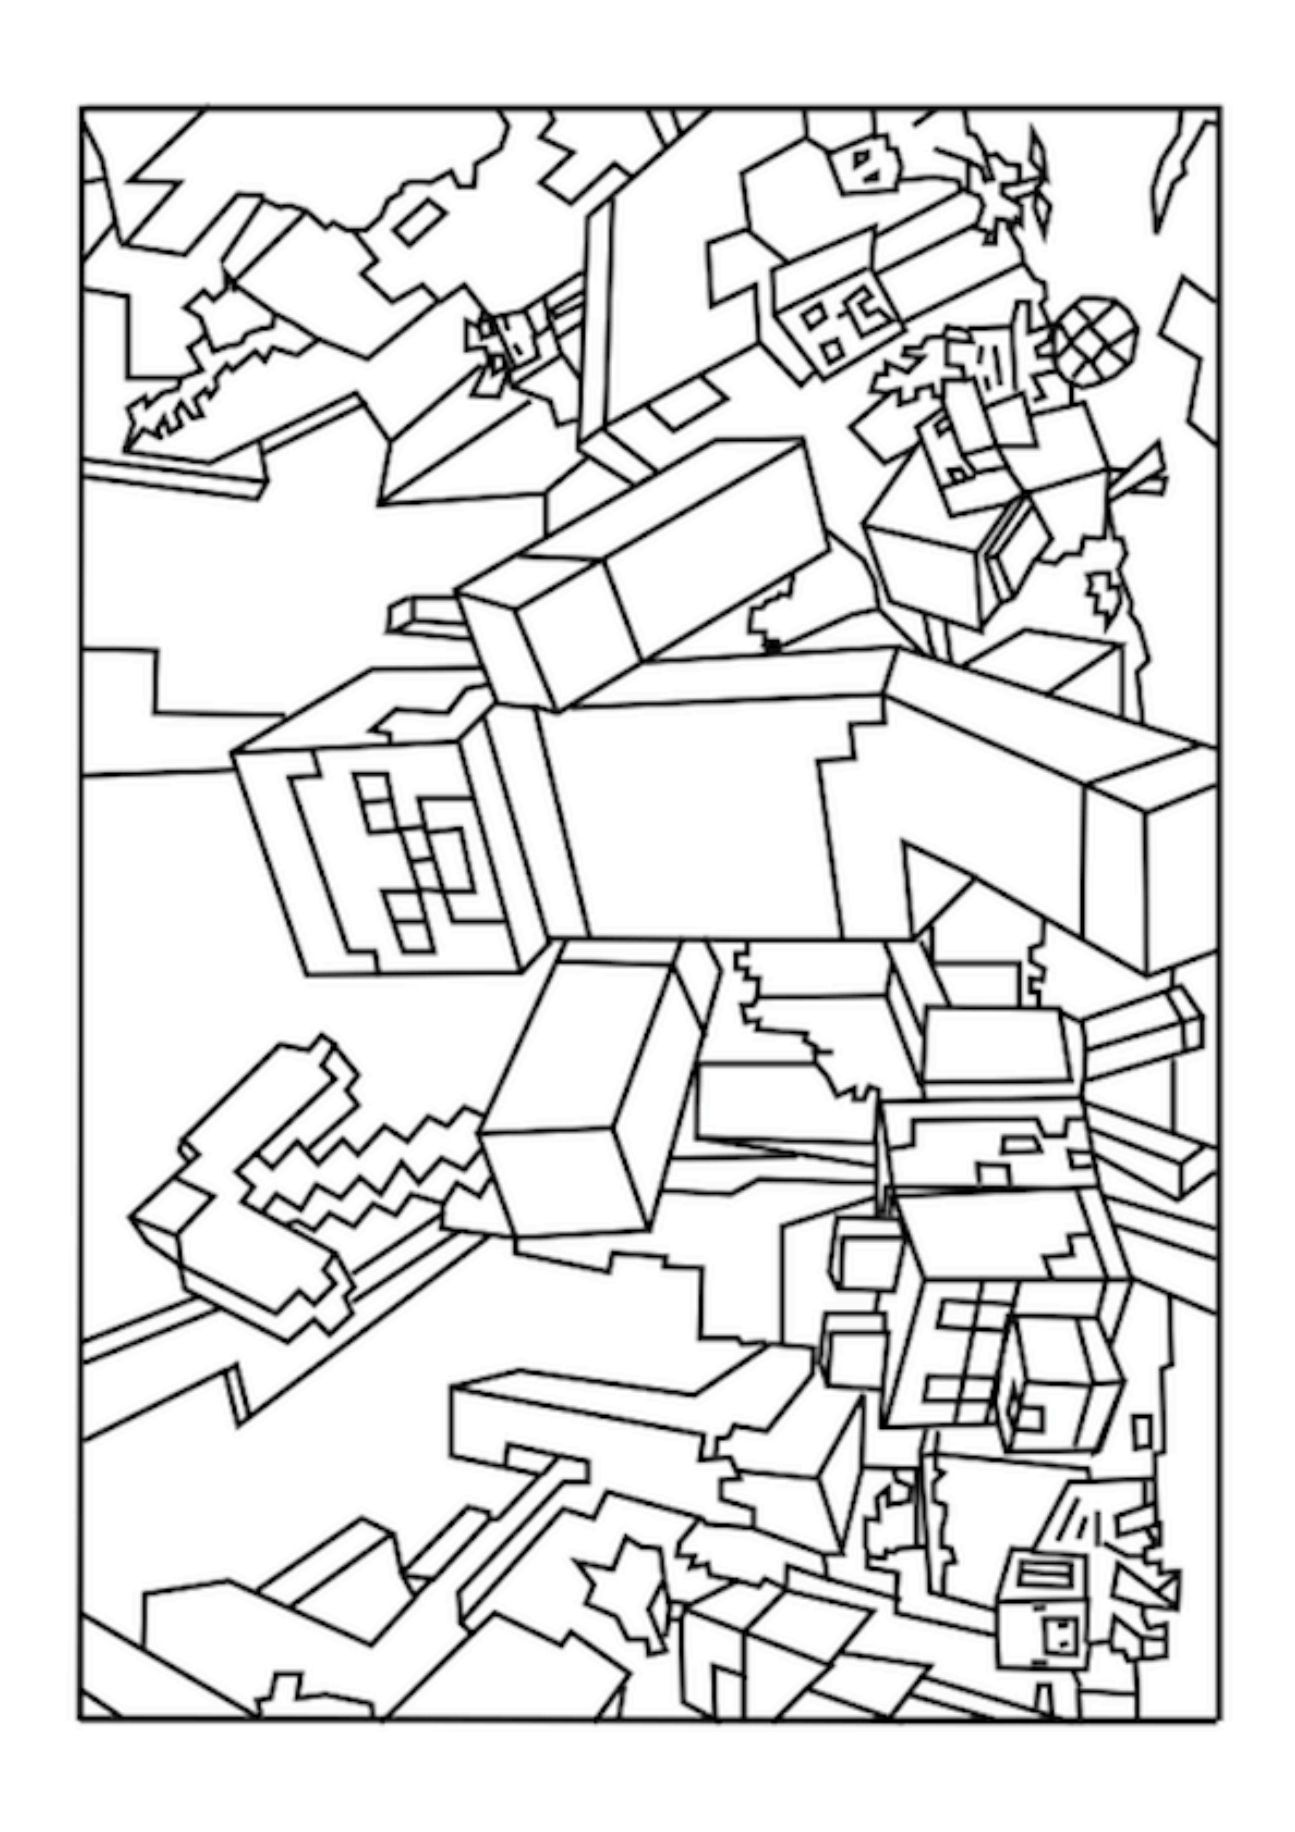 mine craft coloring pages printable minecraft coloring pages coloring home pages craft mine coloring